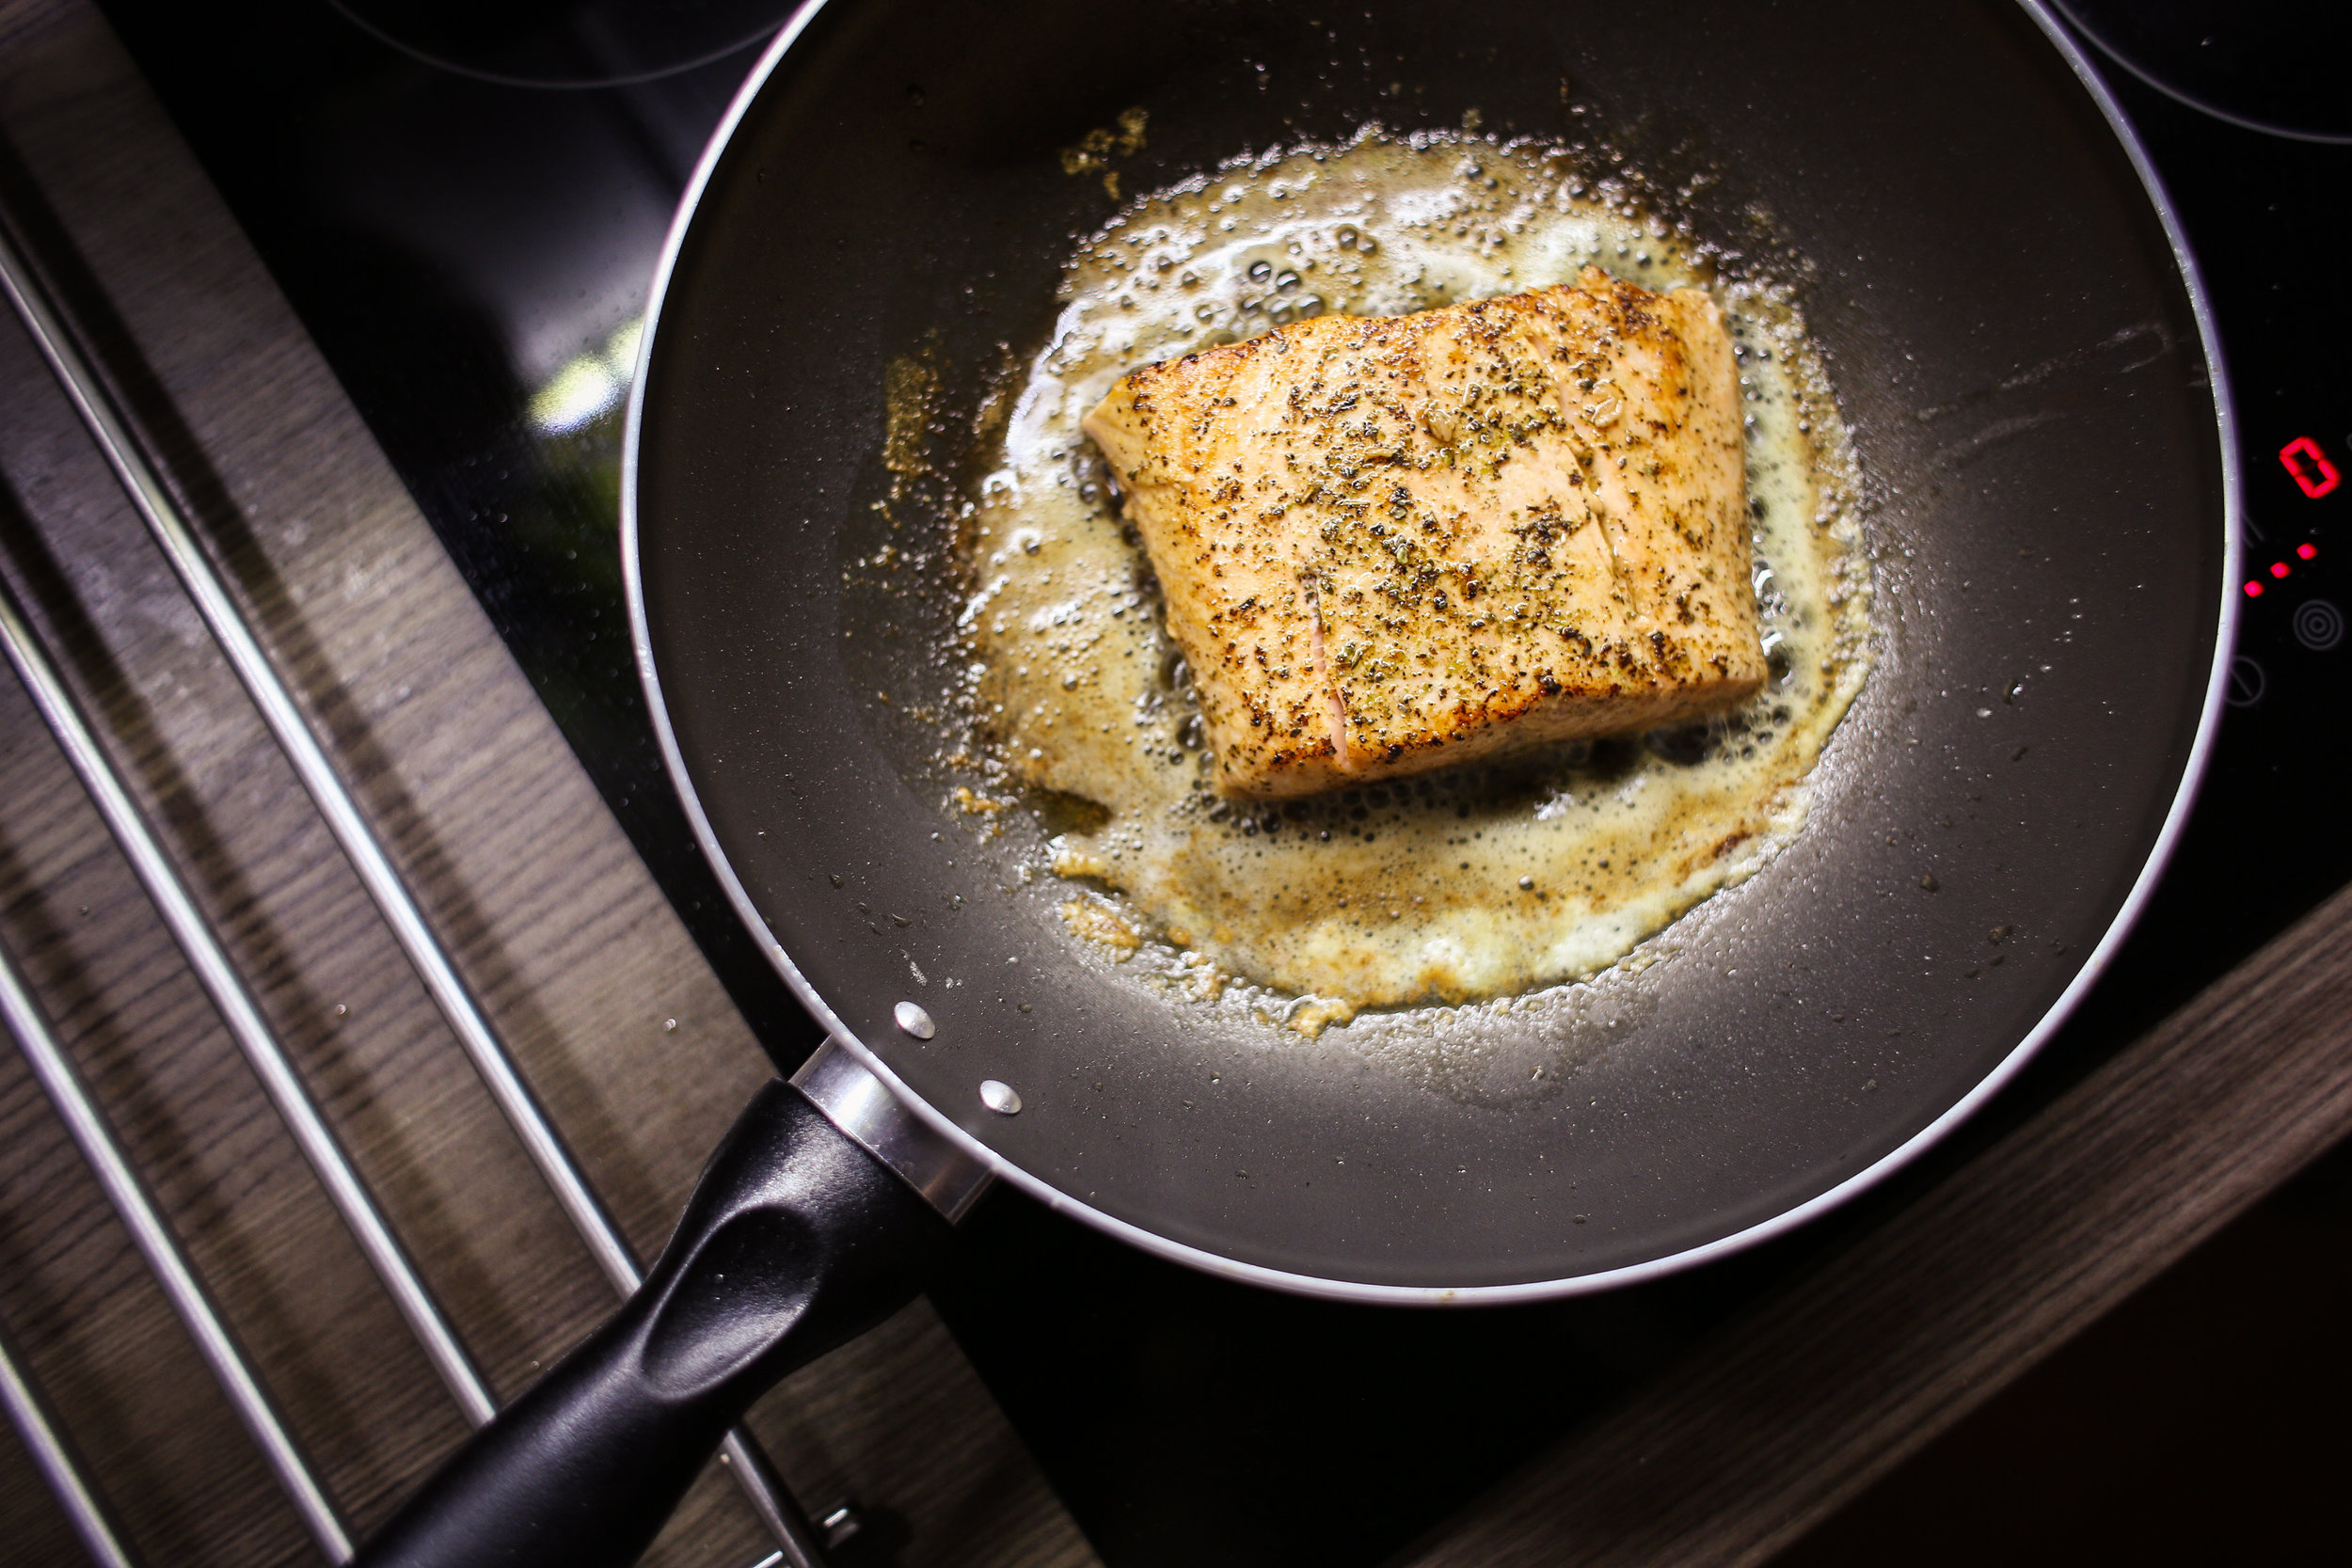 pan-seared-salmon-steak-fillet-picjumbo-com.jpg